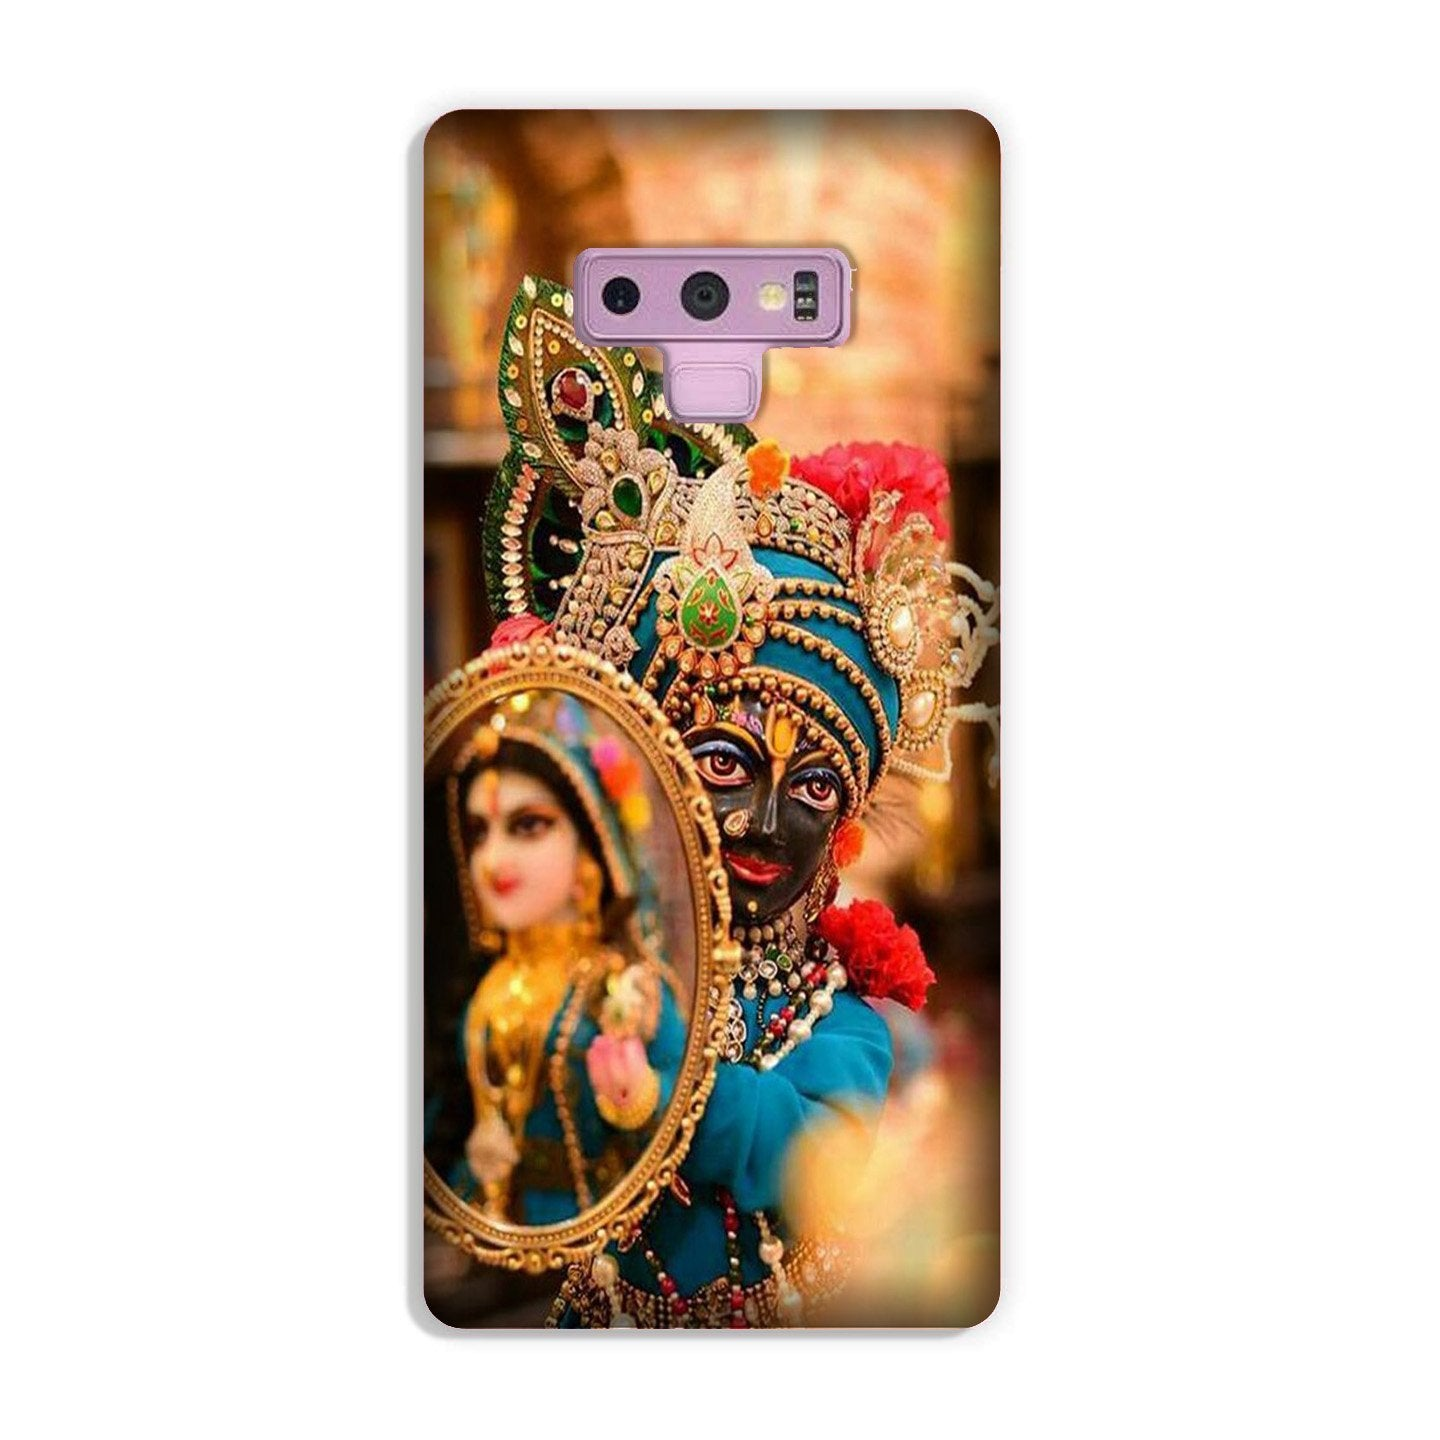 Lord Krishna5 Case for Galaxy Note 9